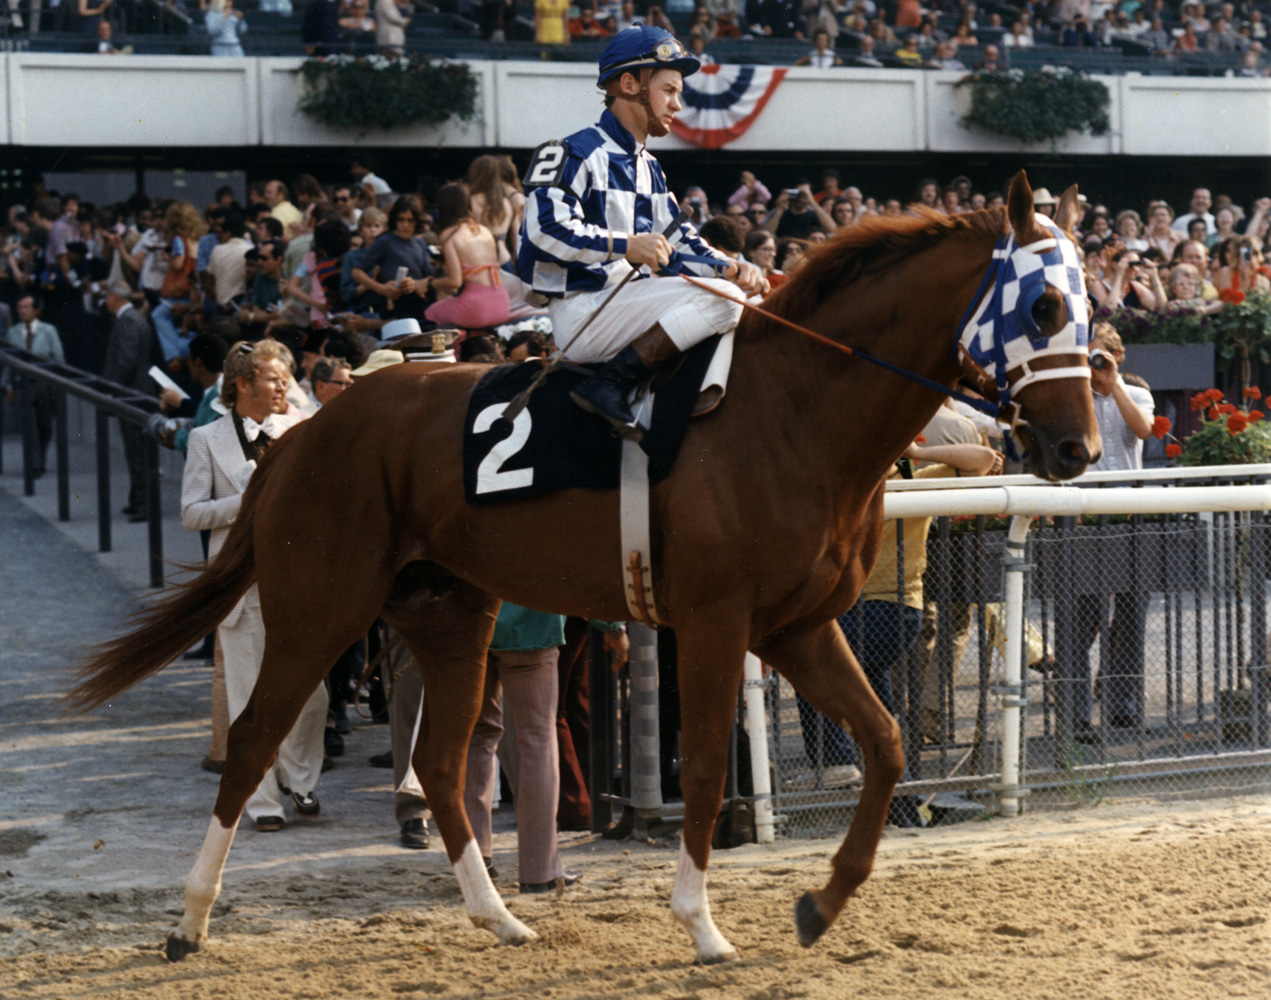 Ron Turcotte and Secretariat entering the track for the 1973 Belmont Stakes (Bob Coglianese/Museum Collection)